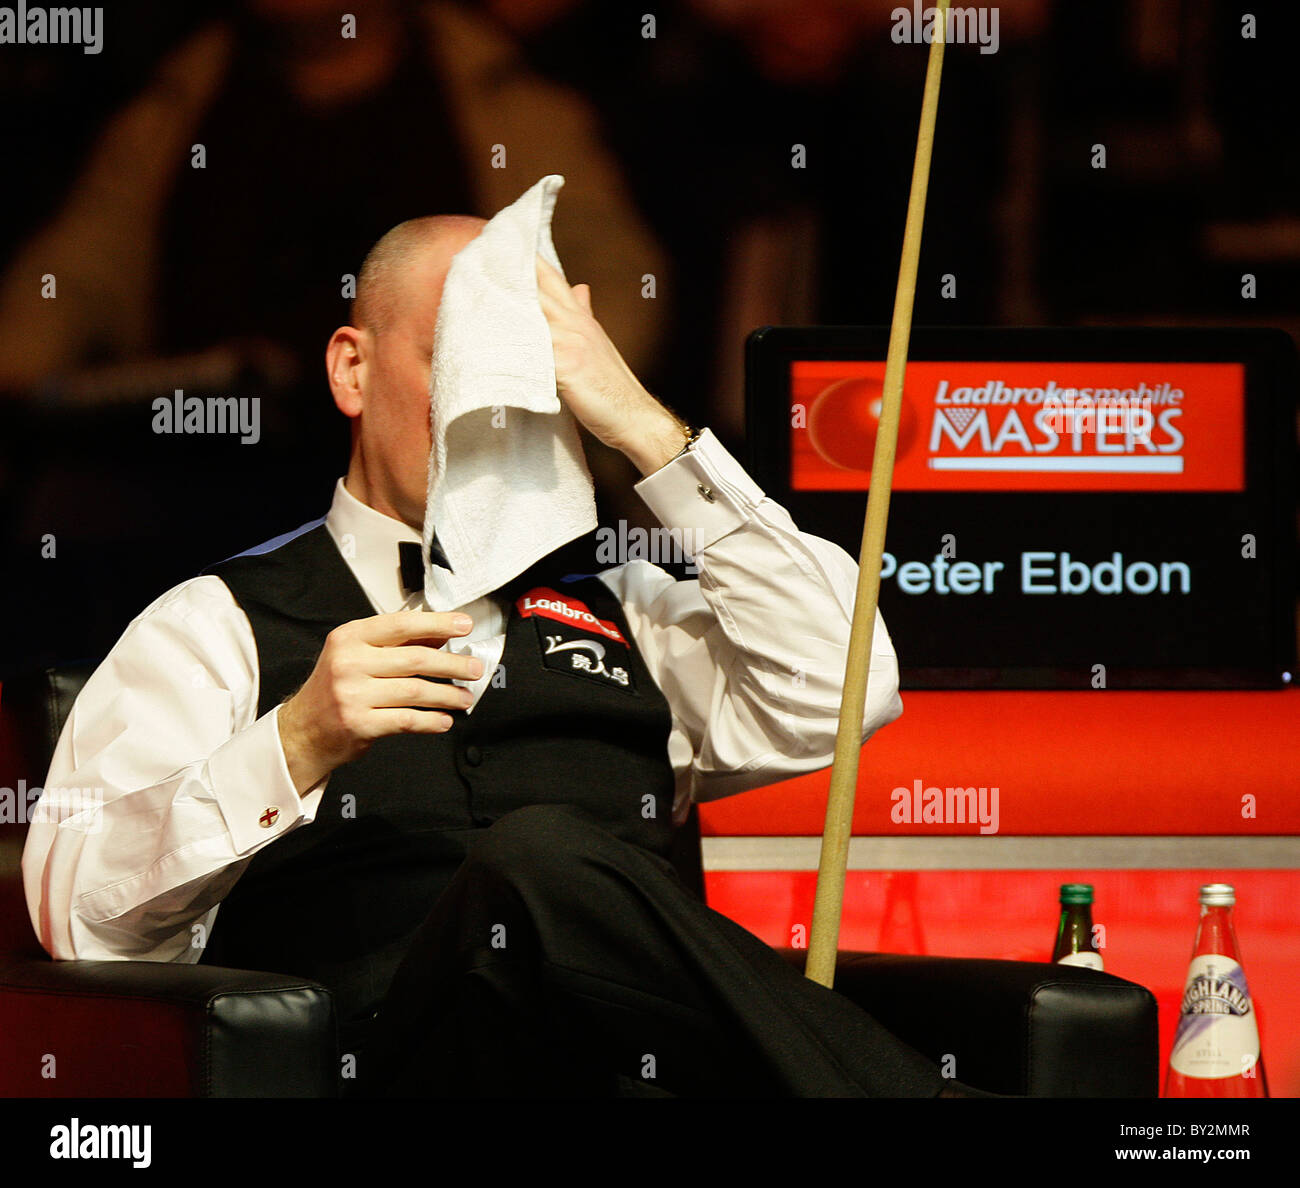 Masters Snooker - Peter Ebdon in action against Marco Fu - Stock Image